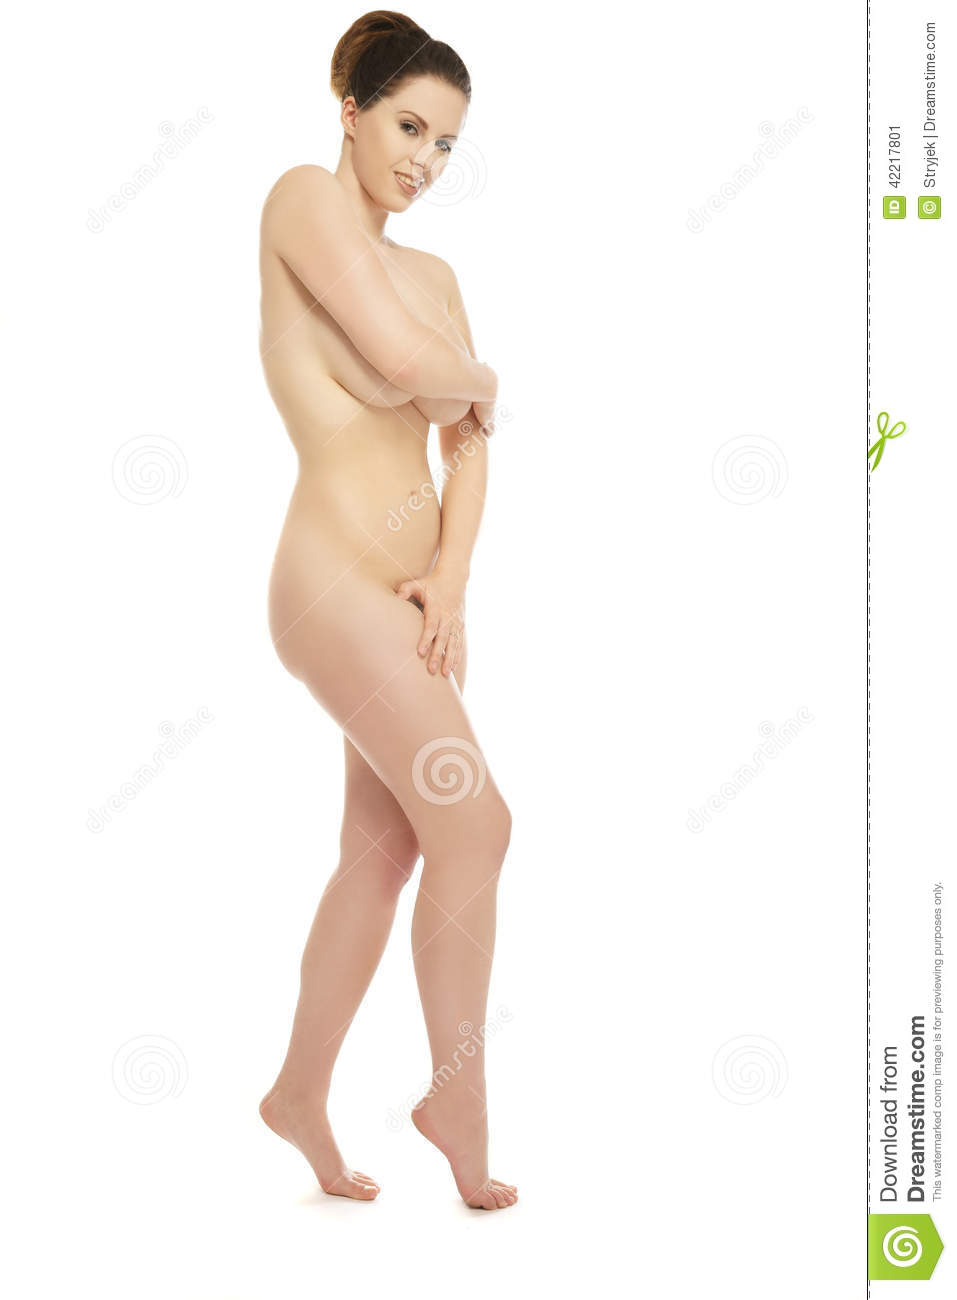 a naked girl with all the private part